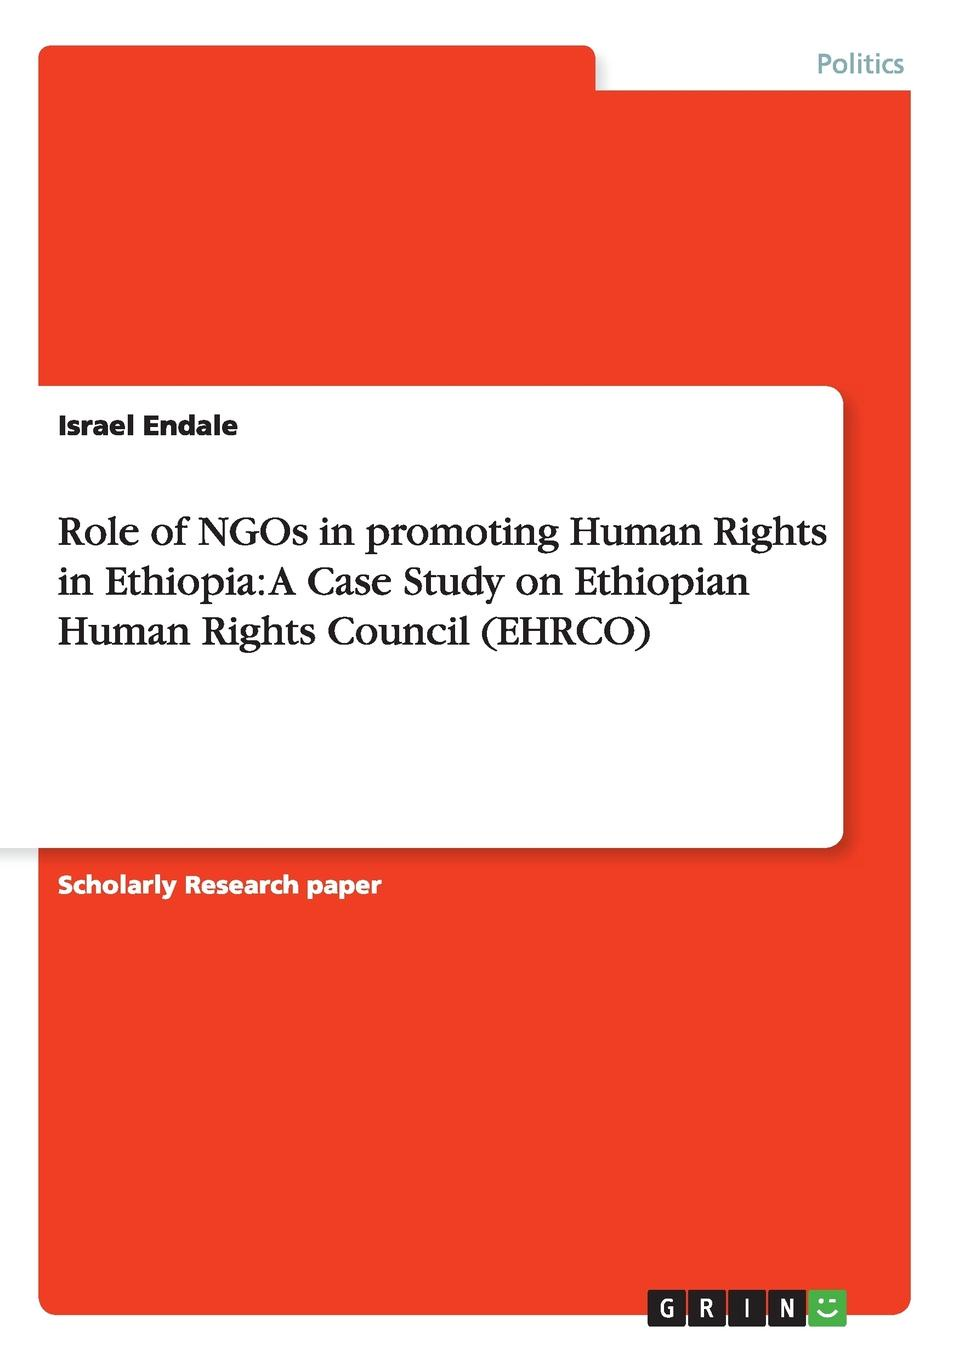 Israel Endale Role of NGOs in promoting Human Rights in Ethiopia. A Case Study on Ethiopian Human Rights Council (EHRCO) цена в Москве и Питере